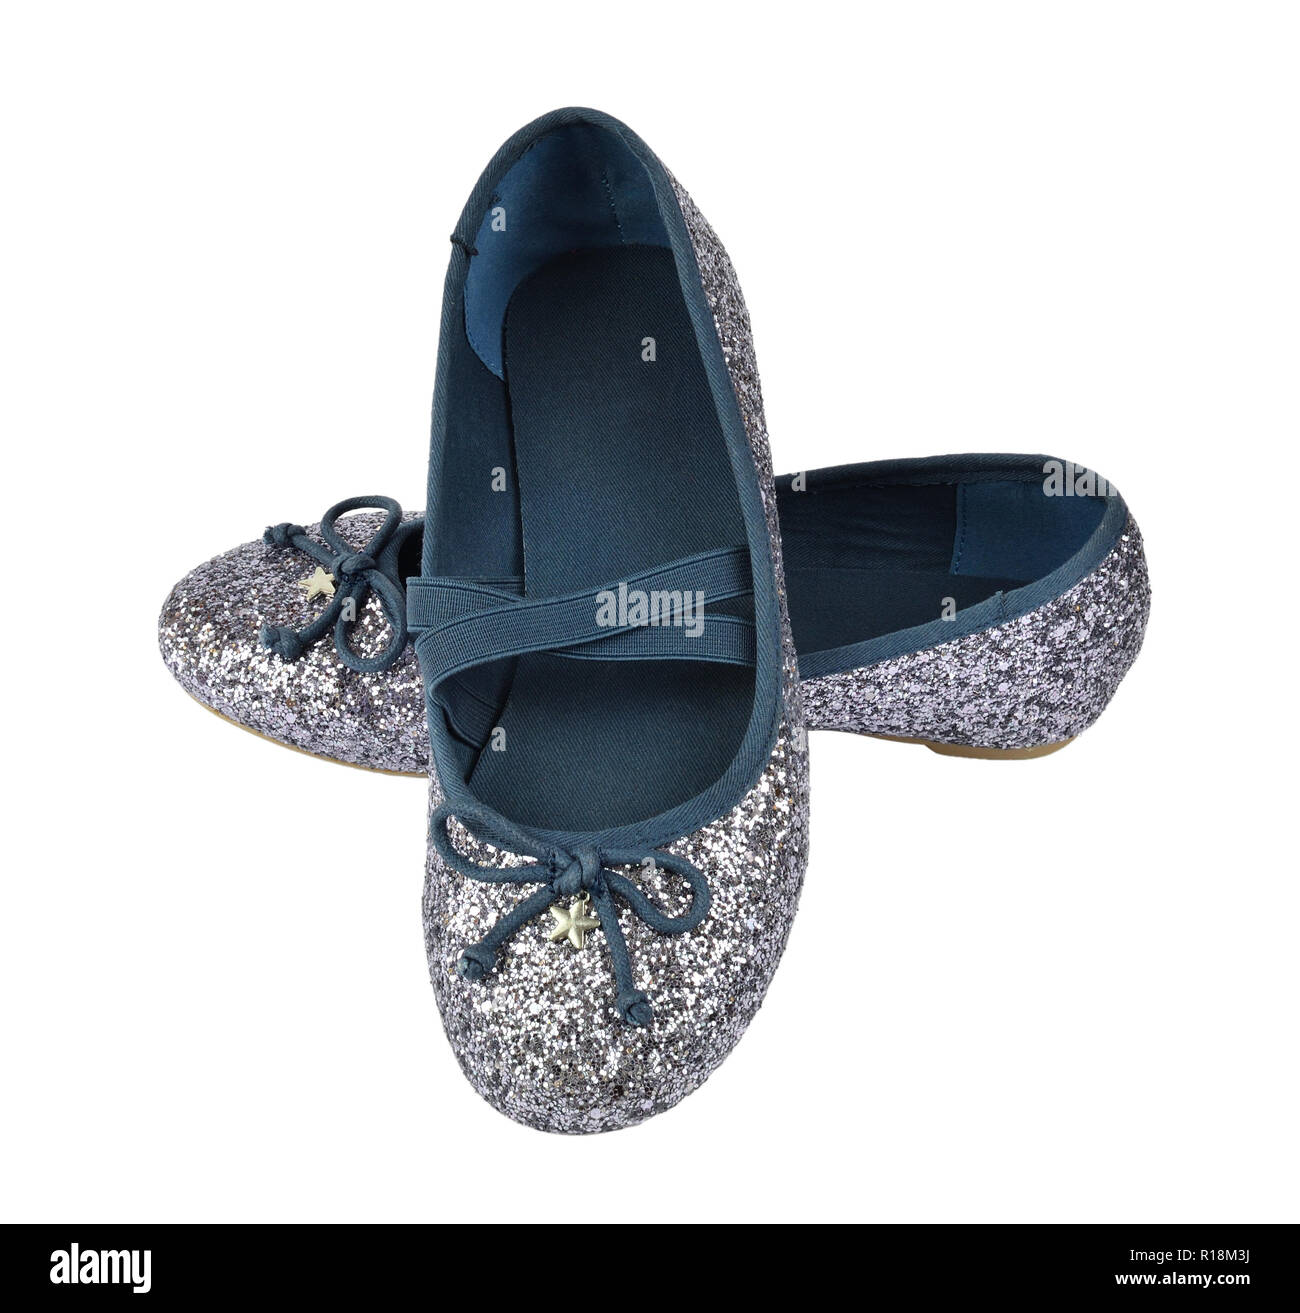 Shimmer silver blue ballerina flat shoes with crossed elastic drawstrings - isolated on white - Stock Image